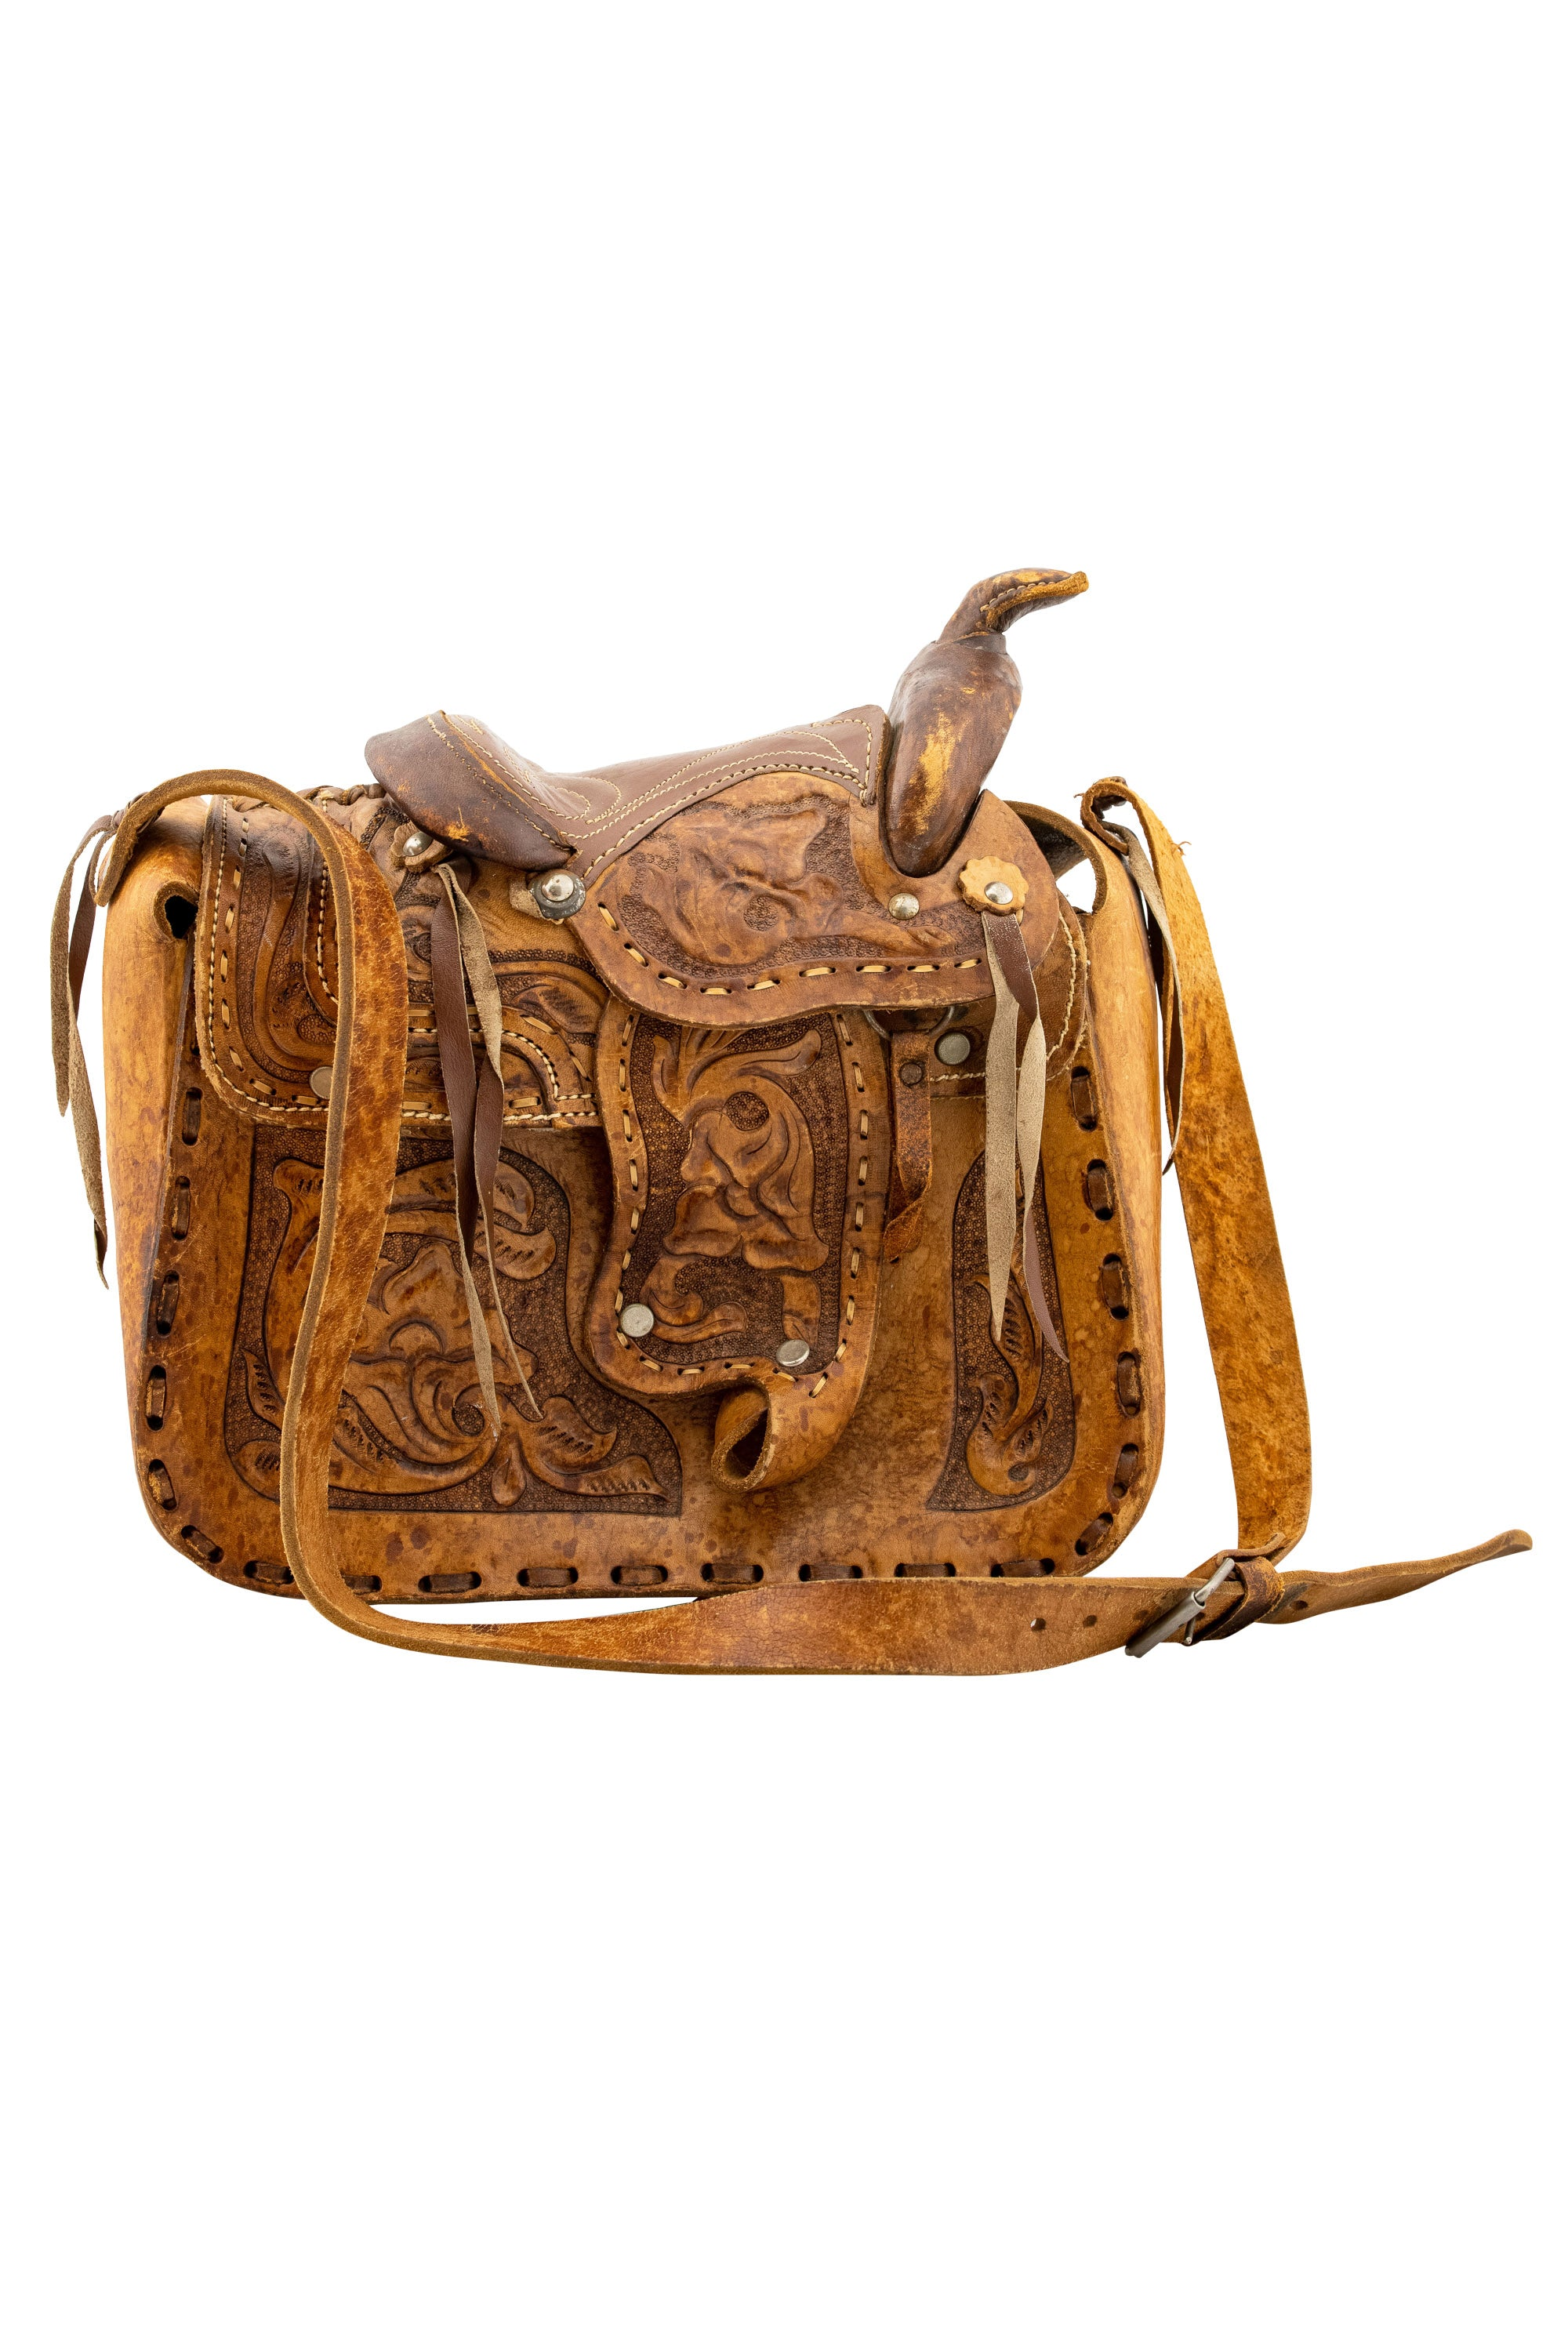 Miscellaneous, Bag, Western Saddle, Vintage '60s, 1005